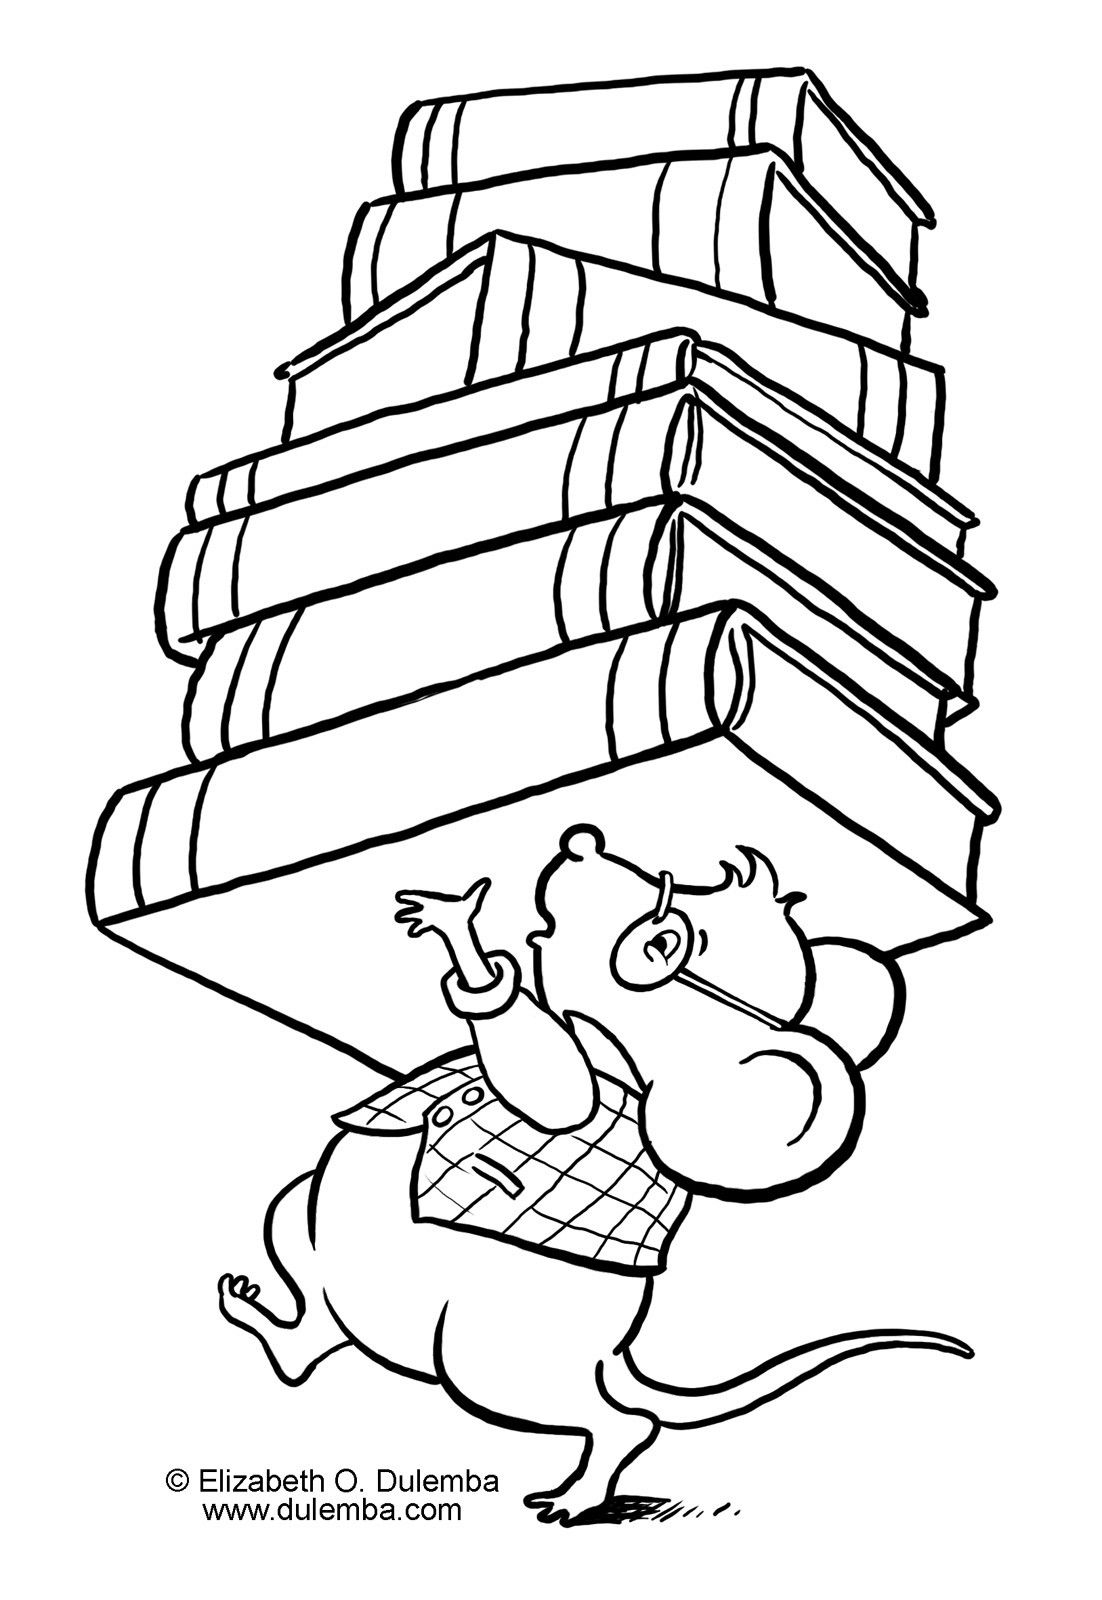 Lovecoloring Com Coloring Pages Colouring Pages Coloring Books